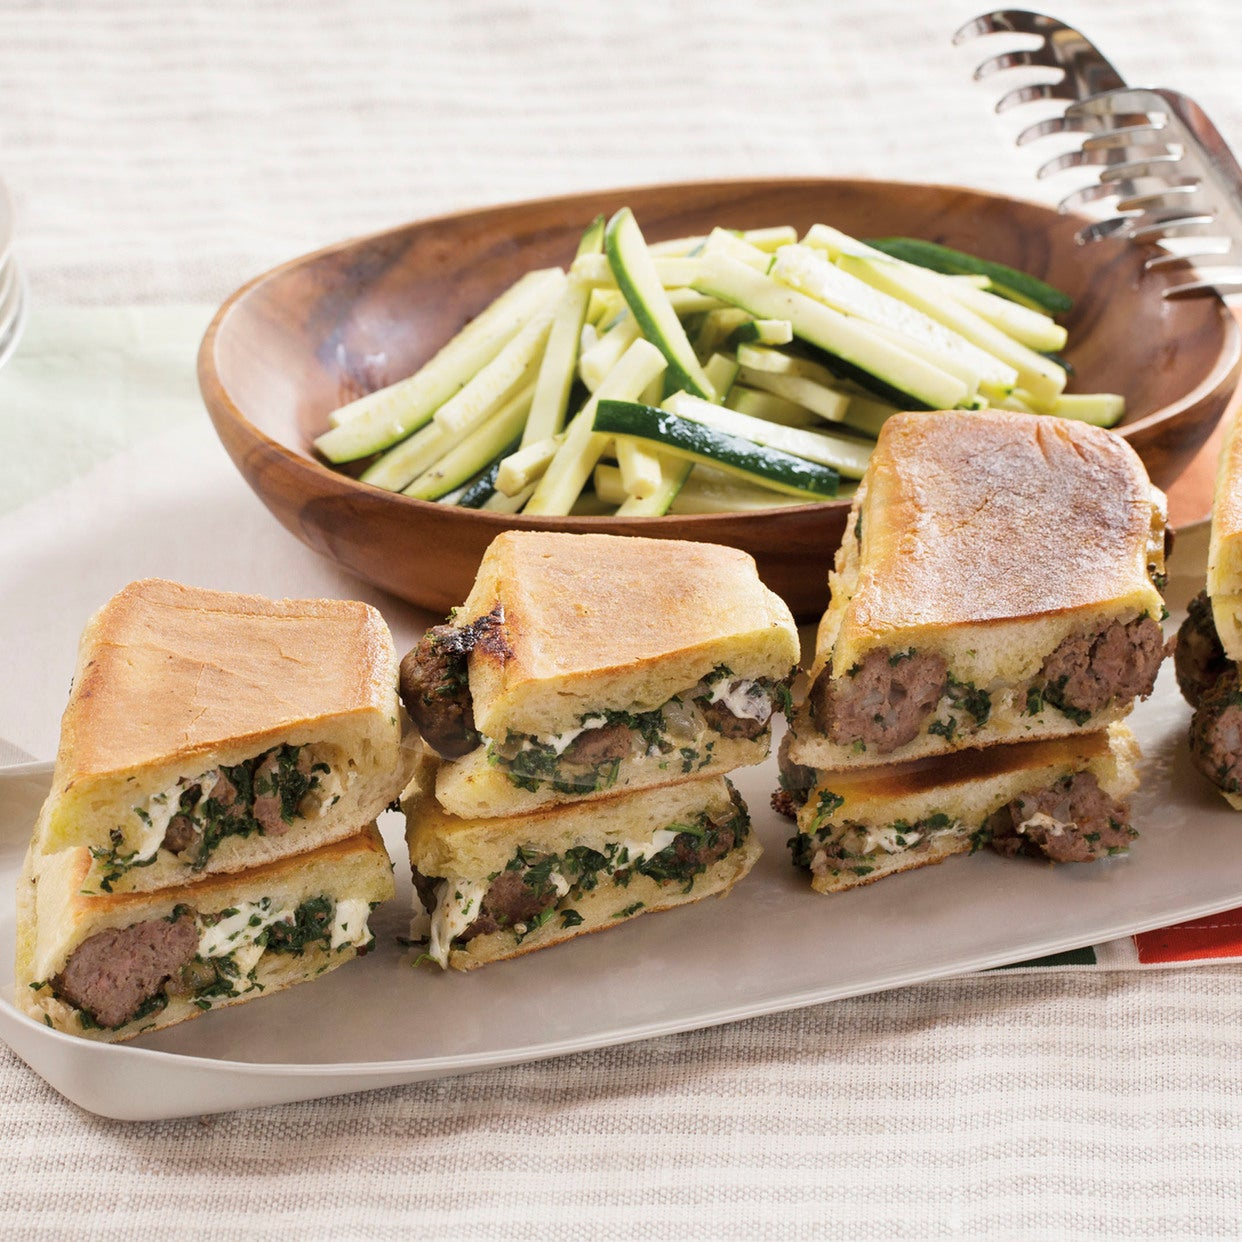 Pesto Meatball & Mozzarella Paninis with Zucchini Slaw